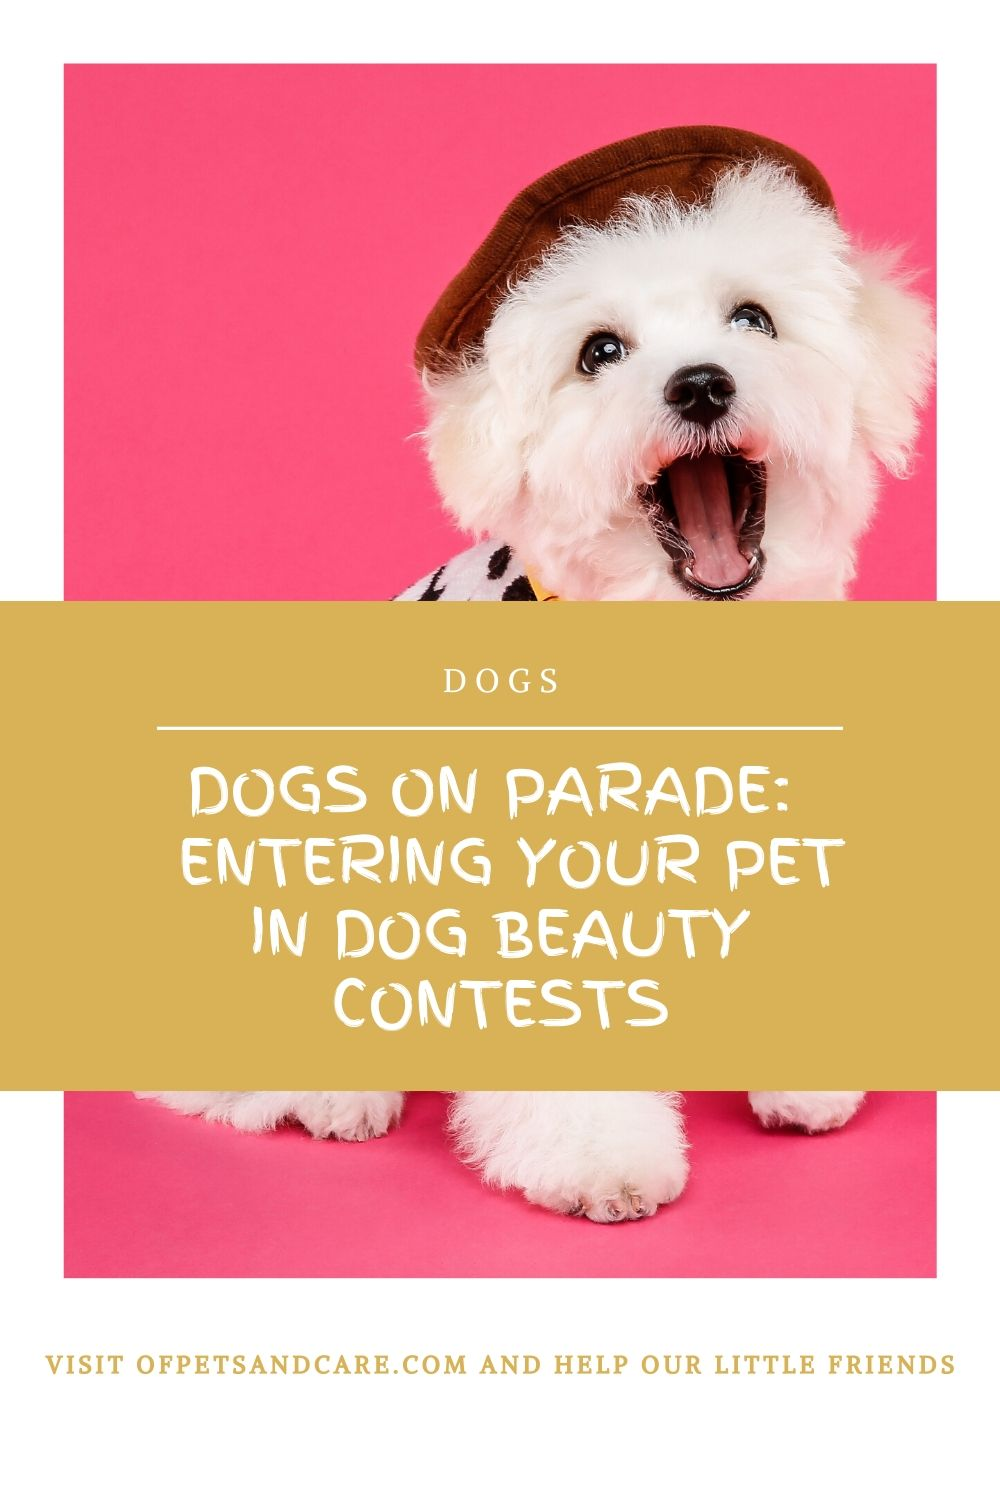 Dogs on Parade: Entering Your Pet in Dog Beauty Contests